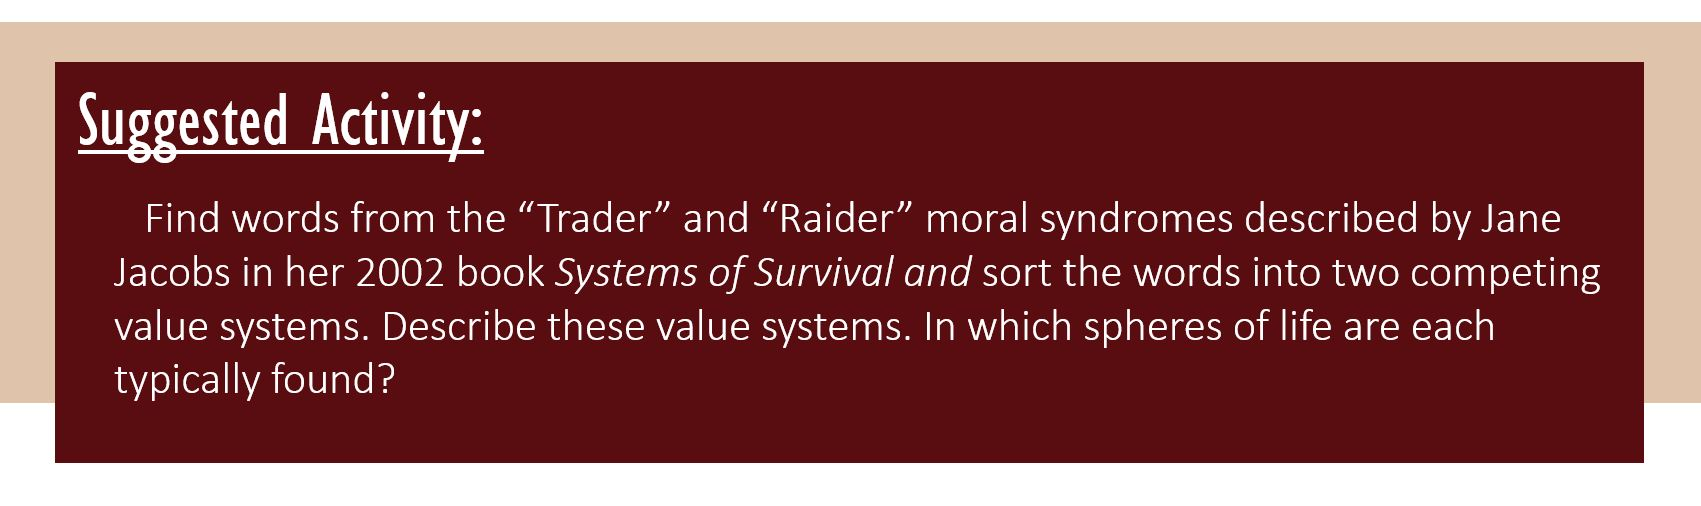 """Suggested Activity: Find words from the """"Trader"""" and """"Raider"""" moral syndromes described by Jane Jacobs in her 2002 book Systems of Survival and sort the words into two competing value systems.Describe these value systems.In which spheres of life are each typically found?"""